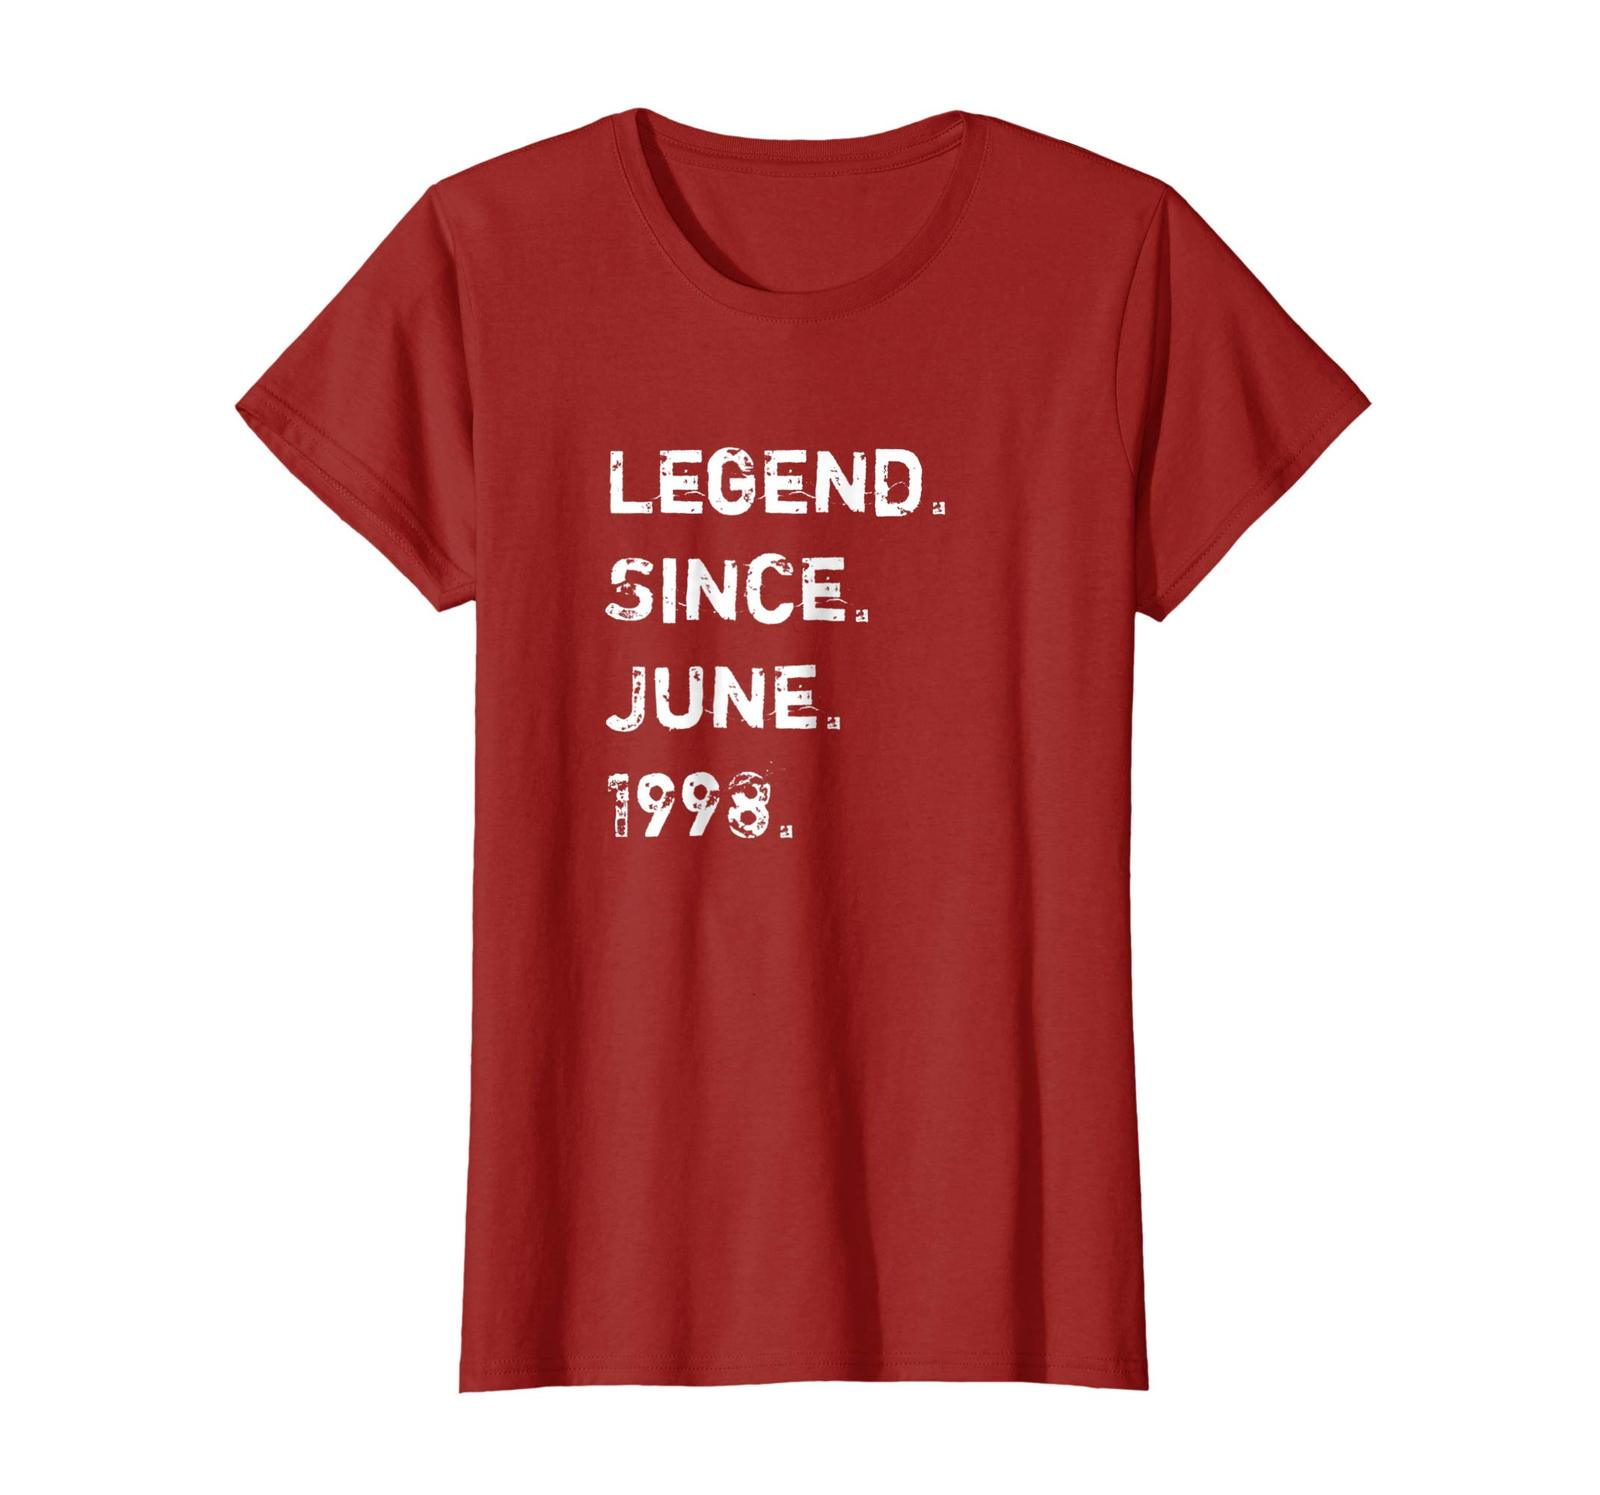 Brother Shirts - Legend Since June 1998 20 Years Old Birthday Gift Shirt Wowen image 2